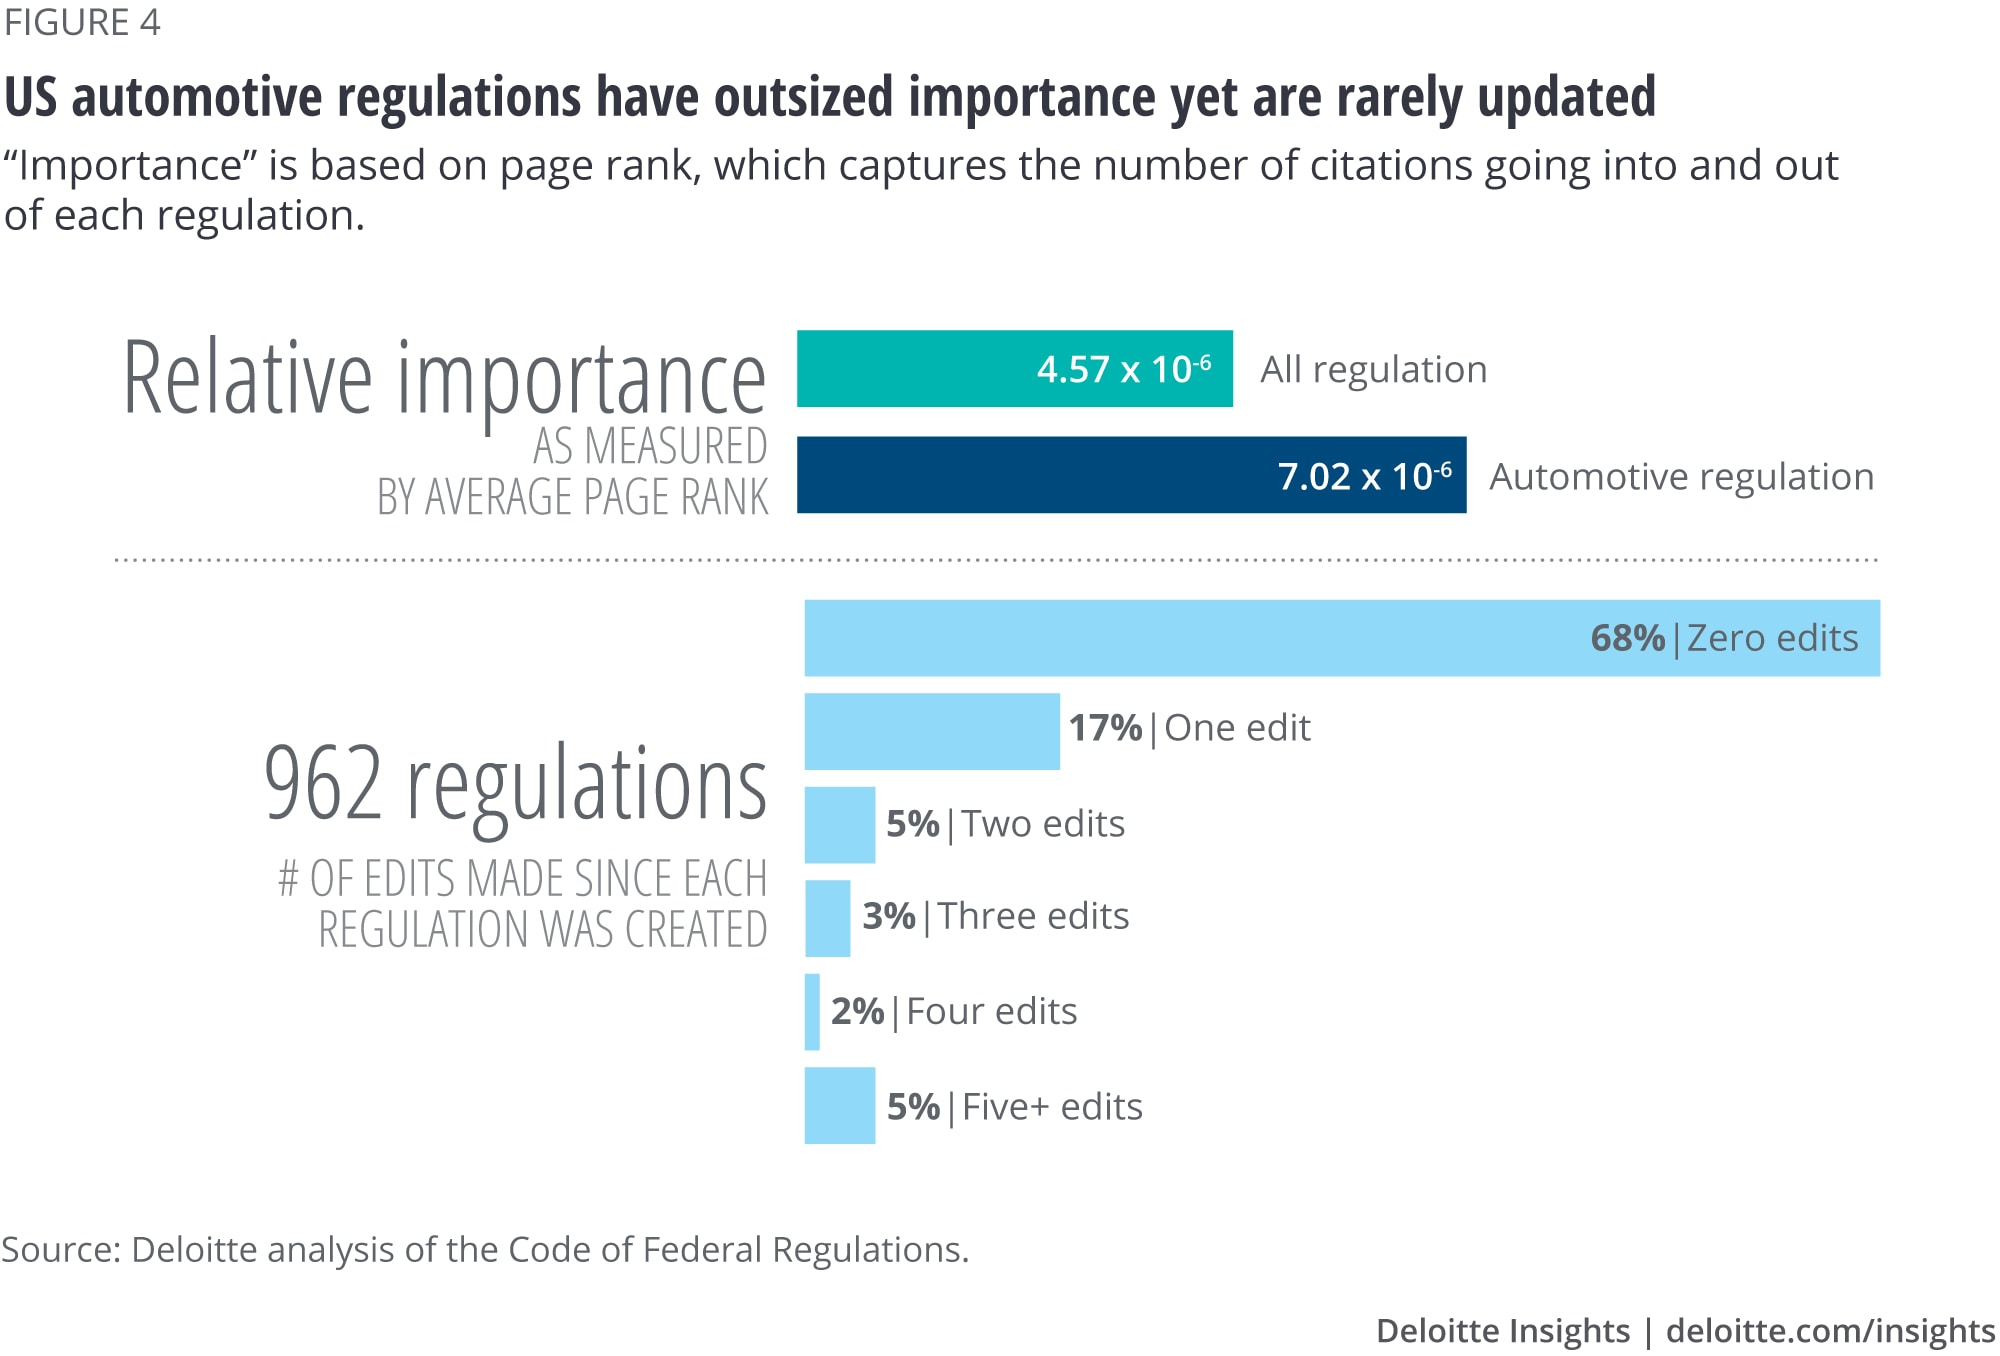 US automotive regulations have outsized importance yet are rarely updated